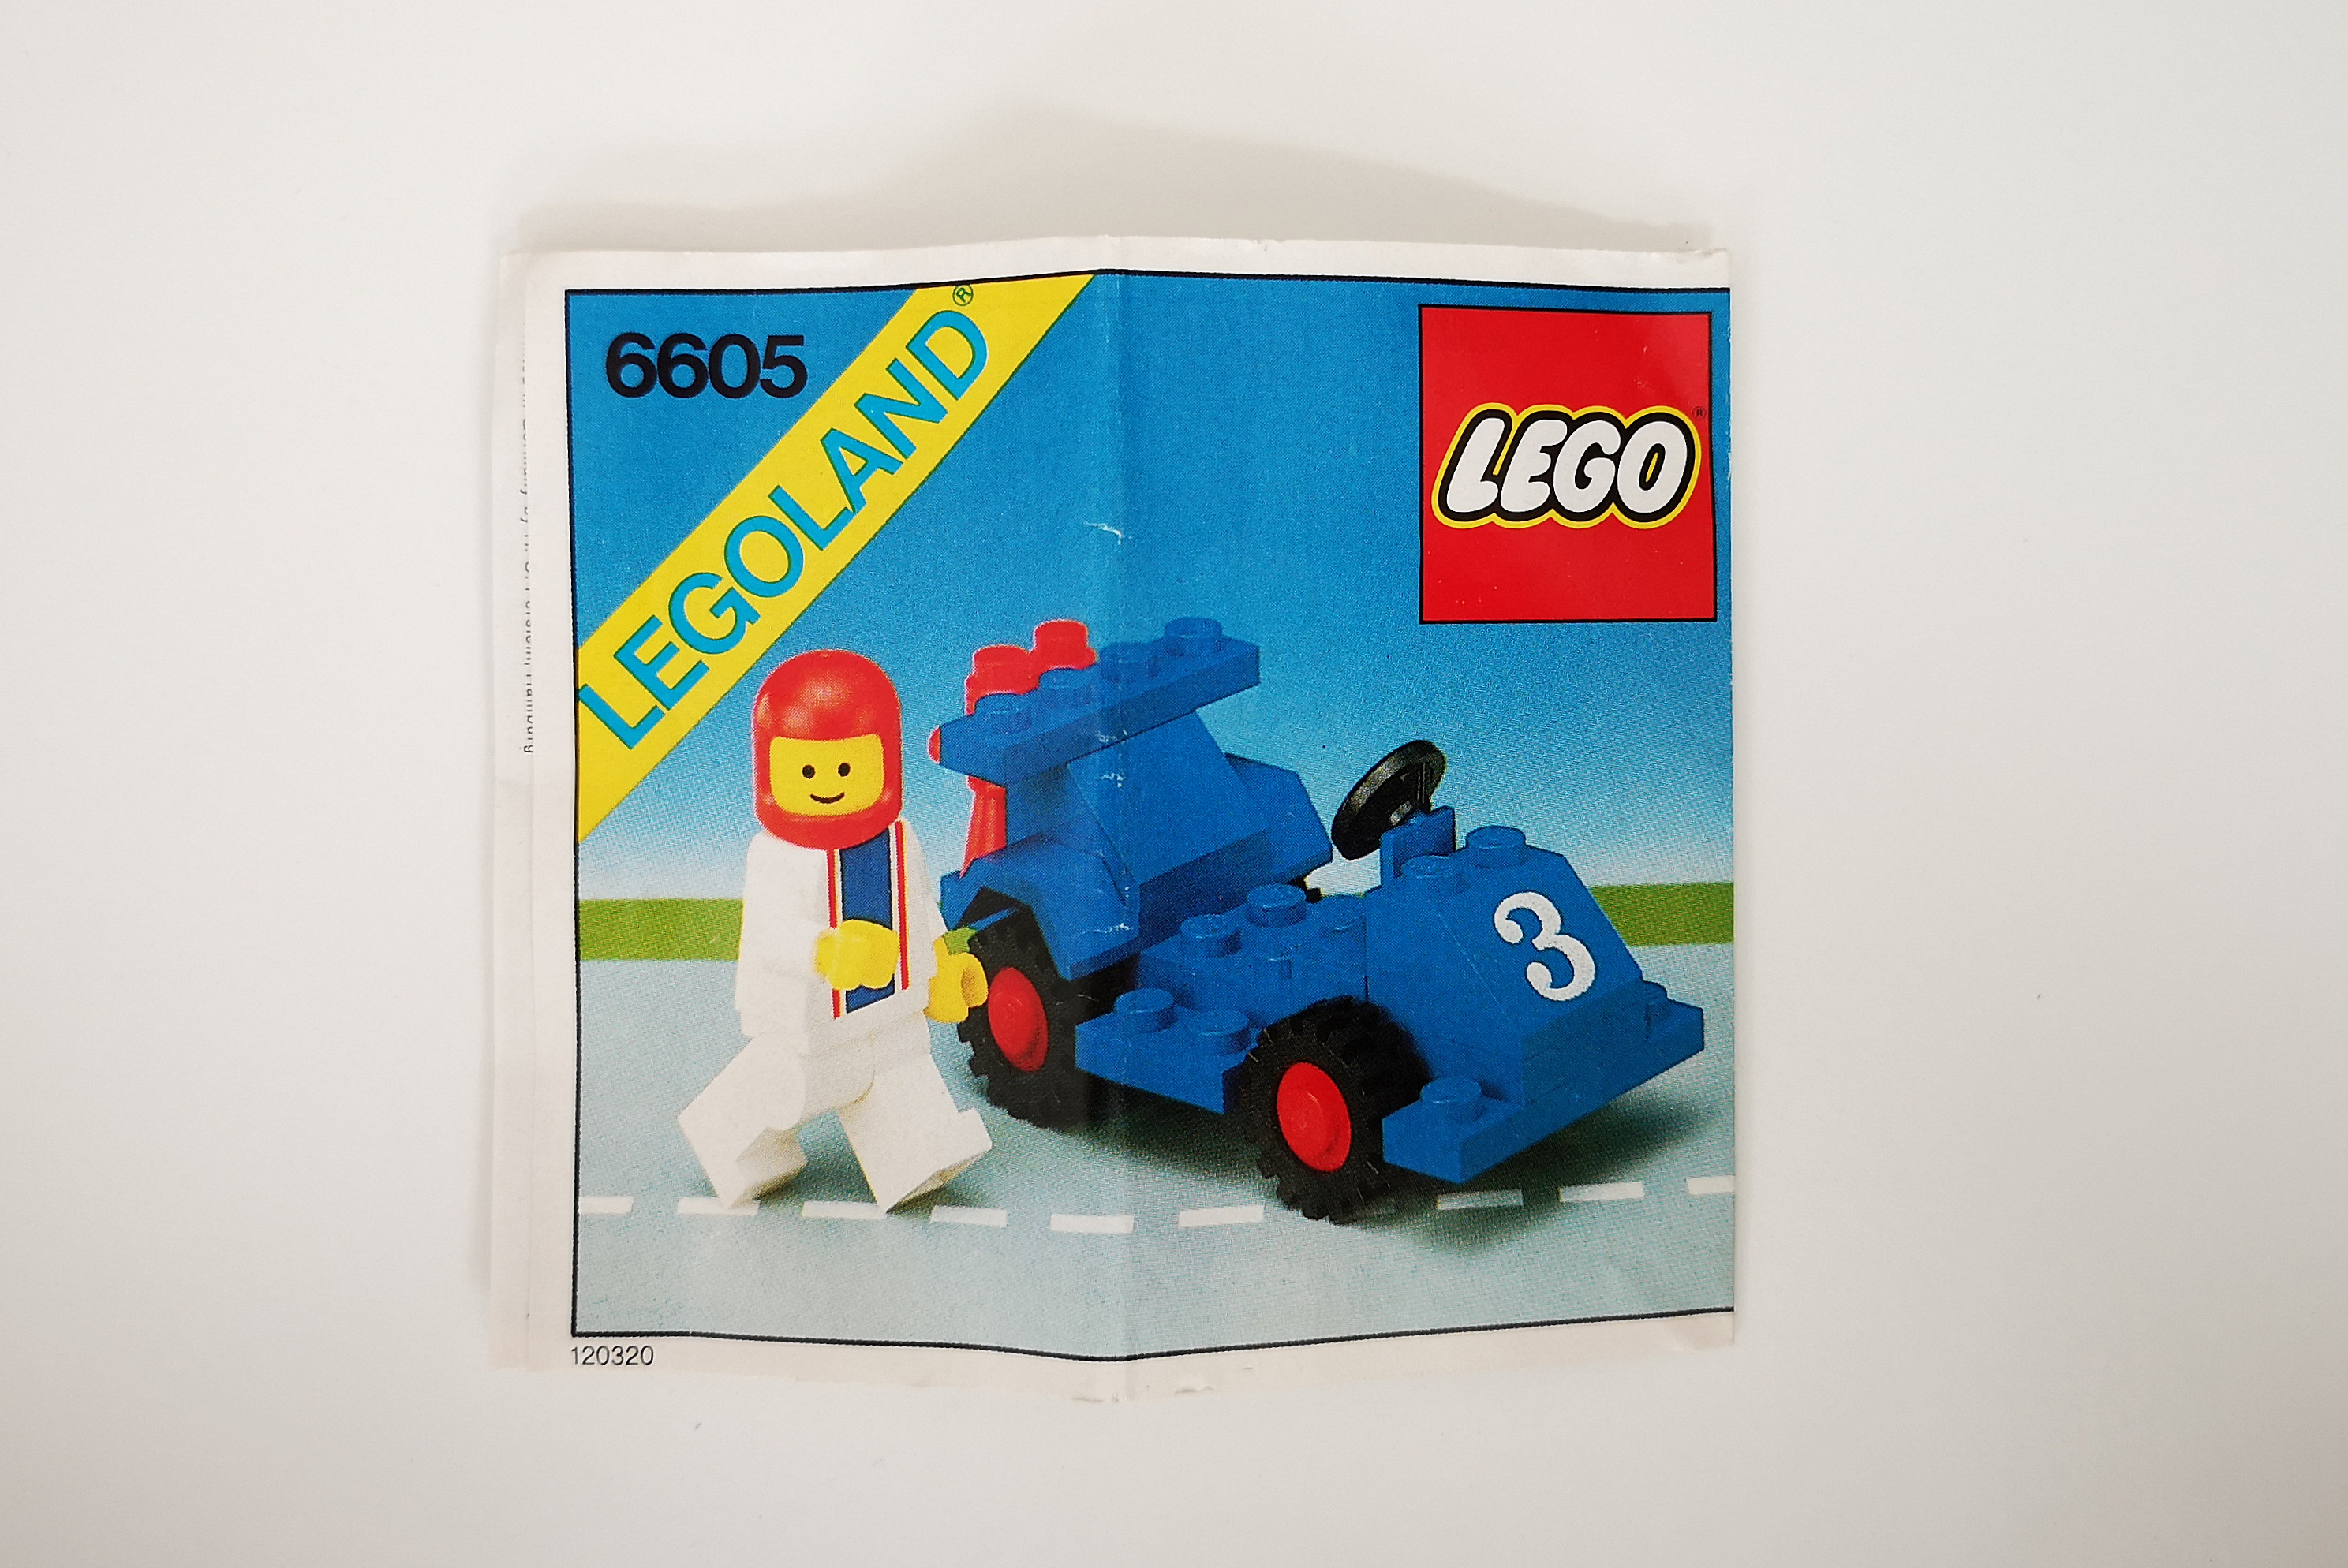 LEGO Review 6605 Instruction Front